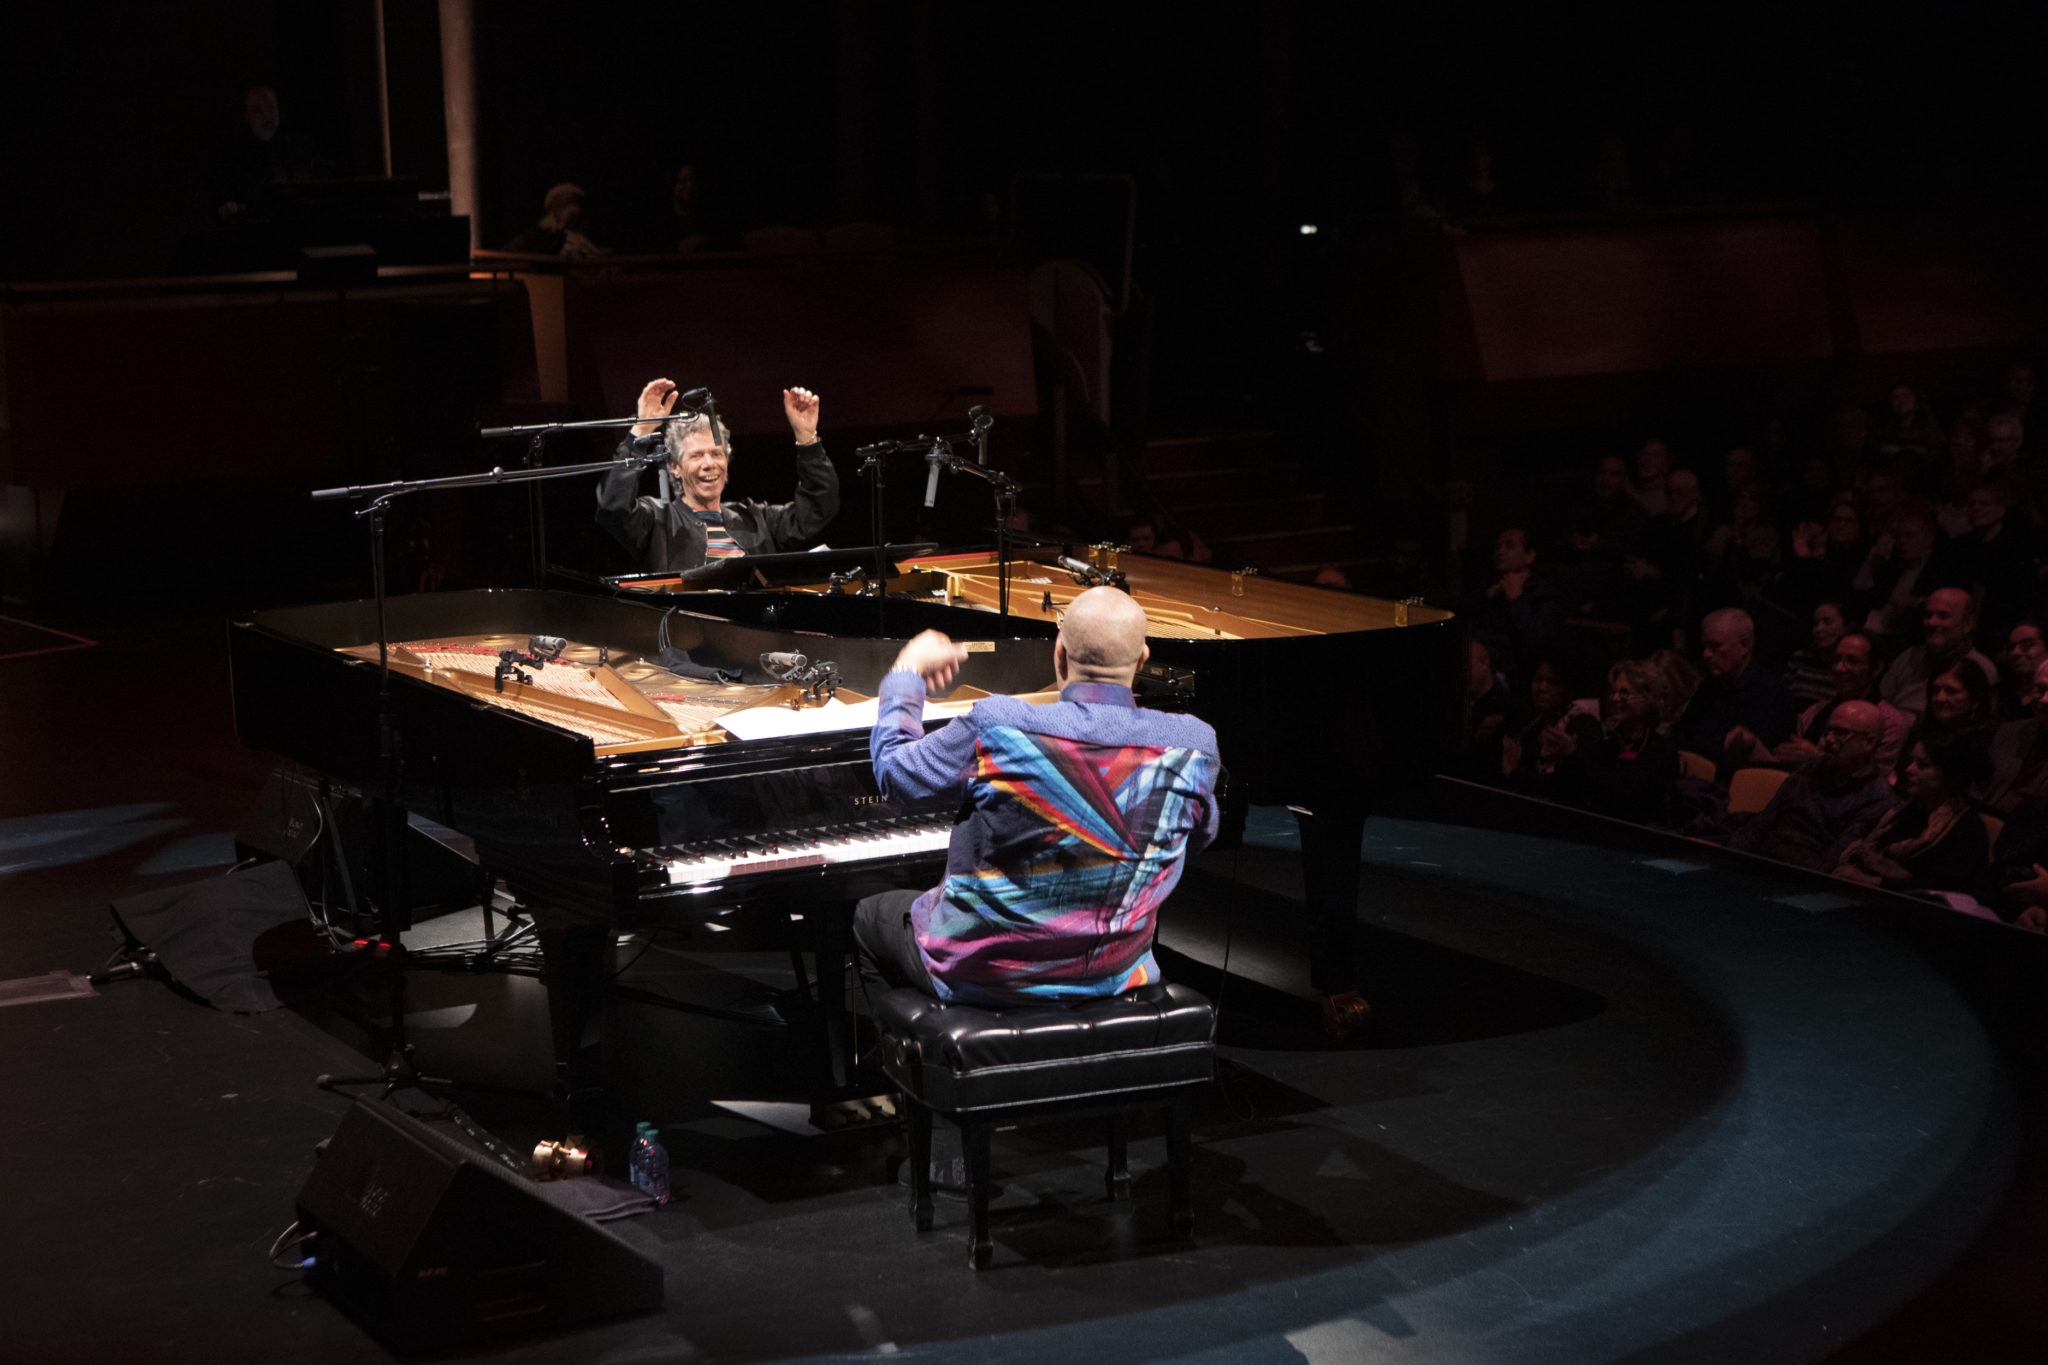 Two Jazz Masters on stage performing together at last: Cuban pianist Chucho Valdés and special guest Chick Corea